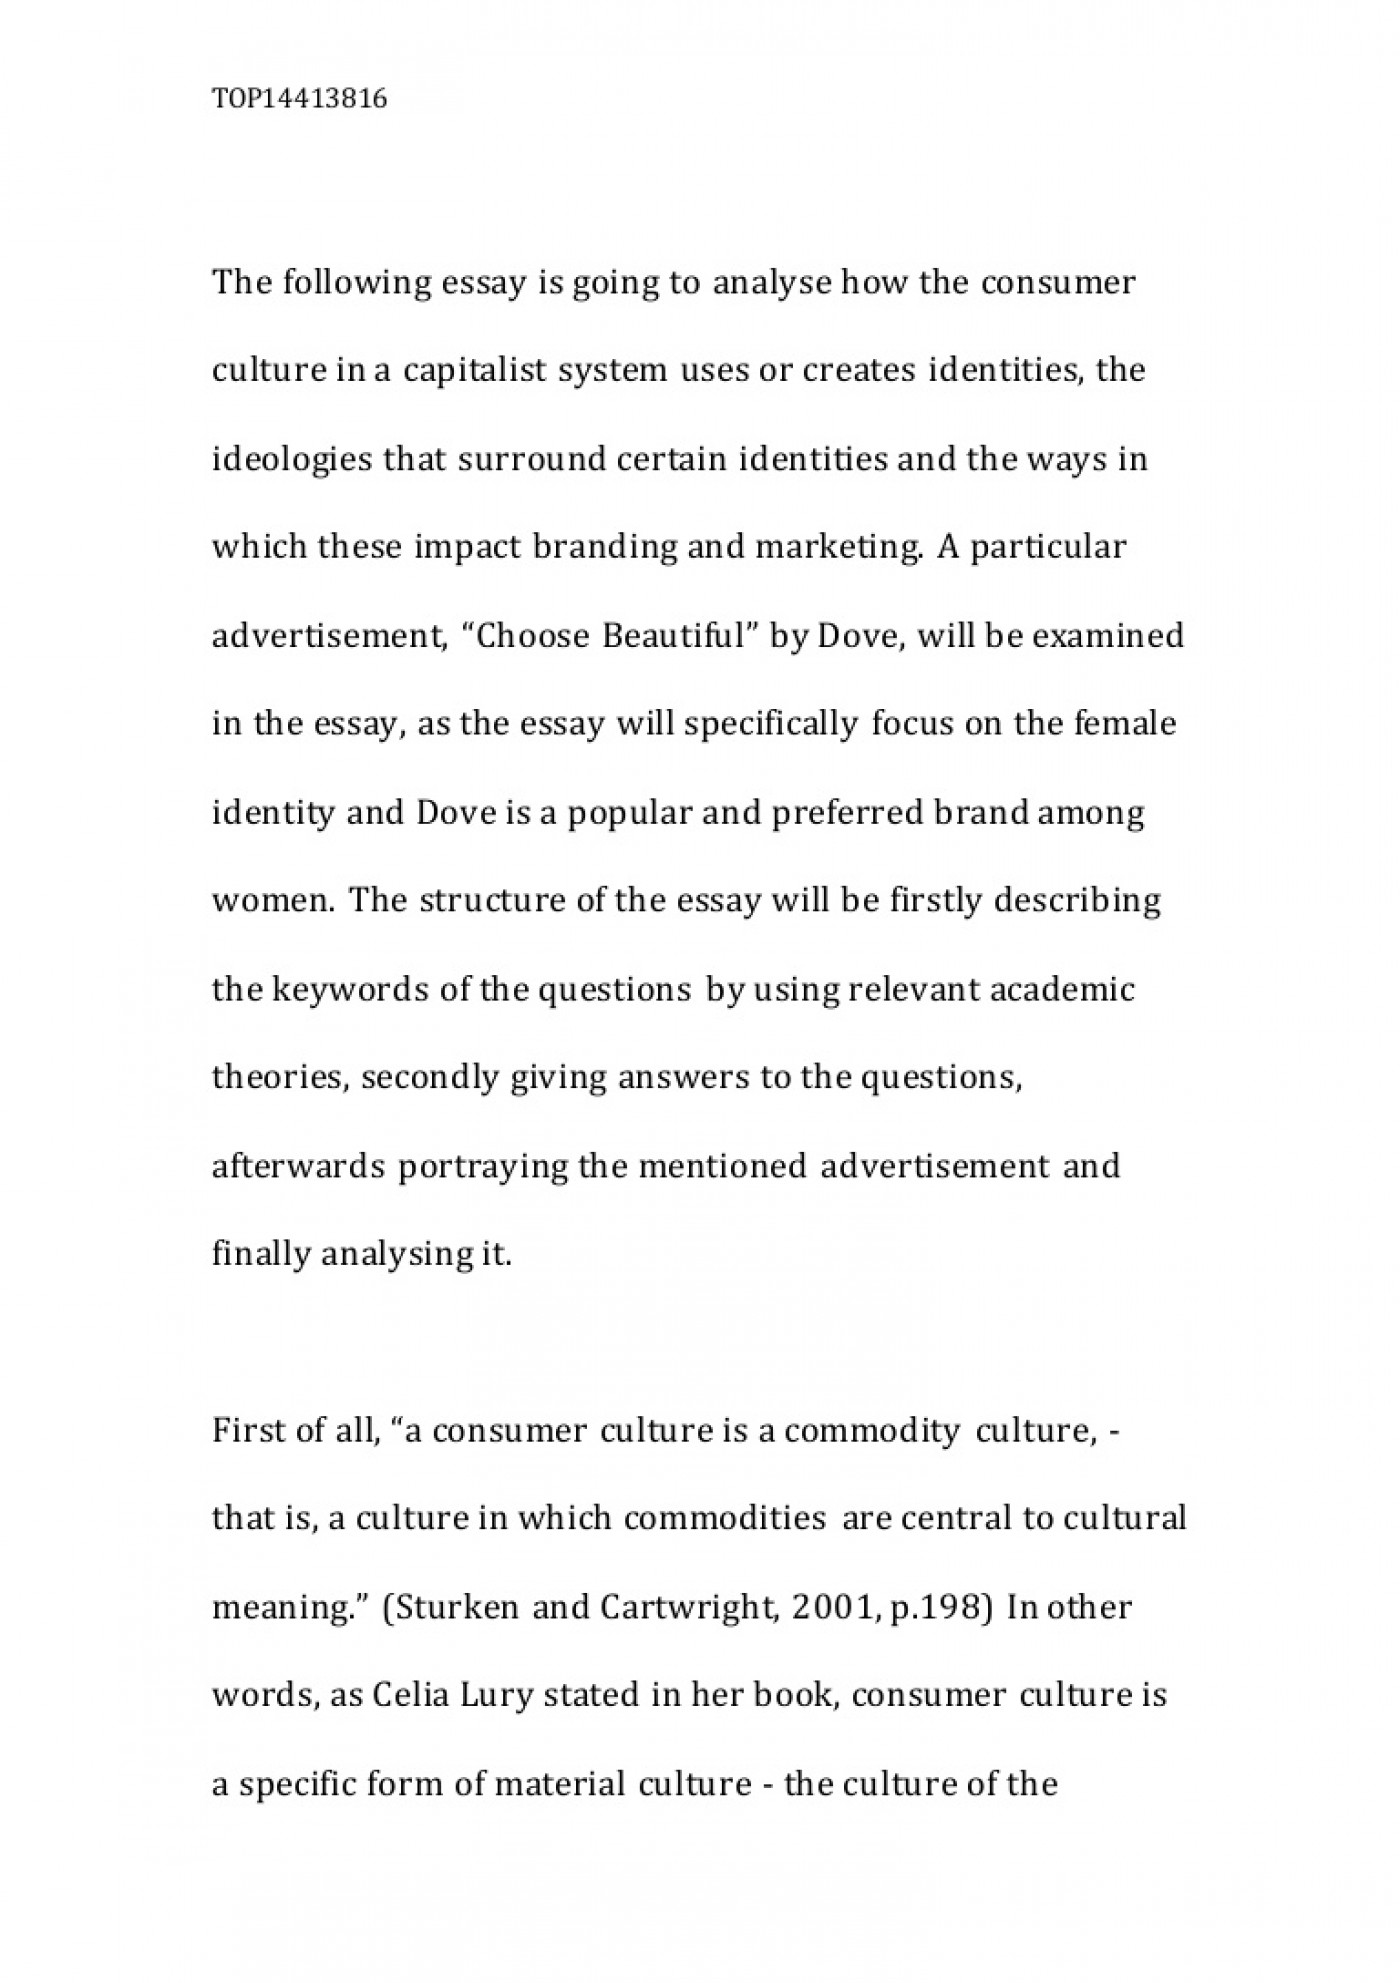 003 Lva1 App6892 Thumbnail Essay About Culture Dreaded On Indian And Society Celebrating Arts Through Reading 1400